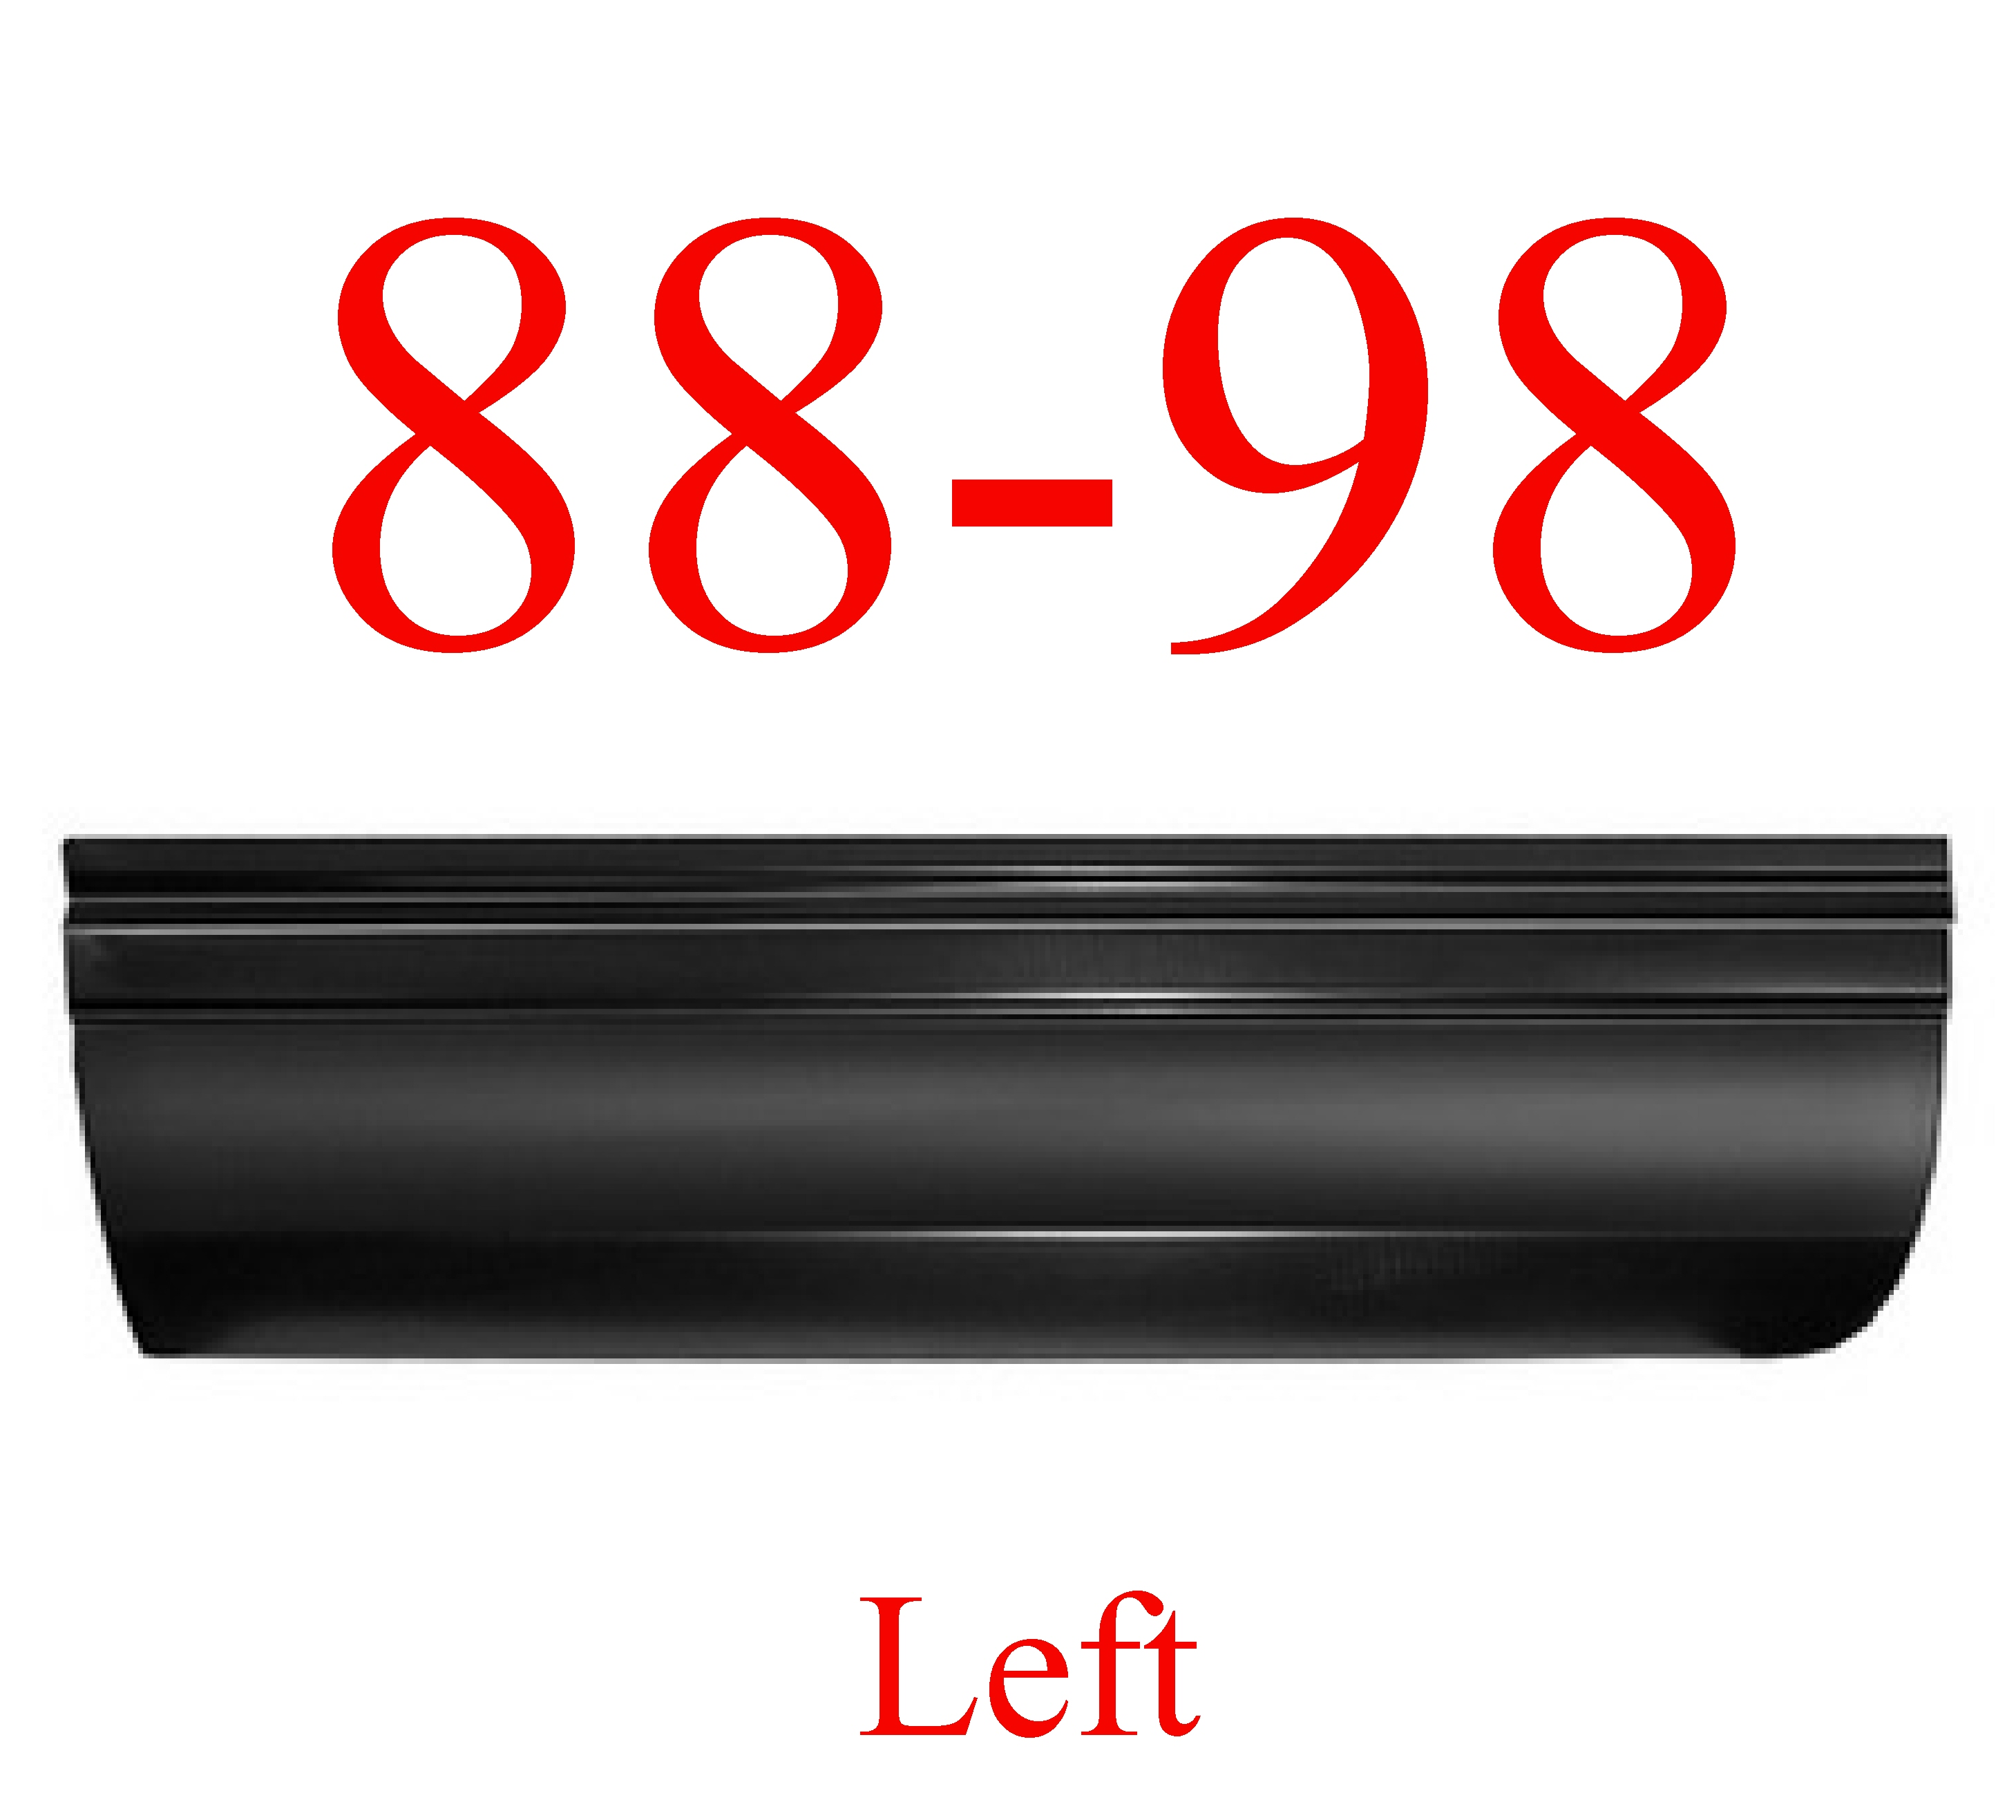 88-98 Chevy GMC LEFT Front Lower Door Skin Panel